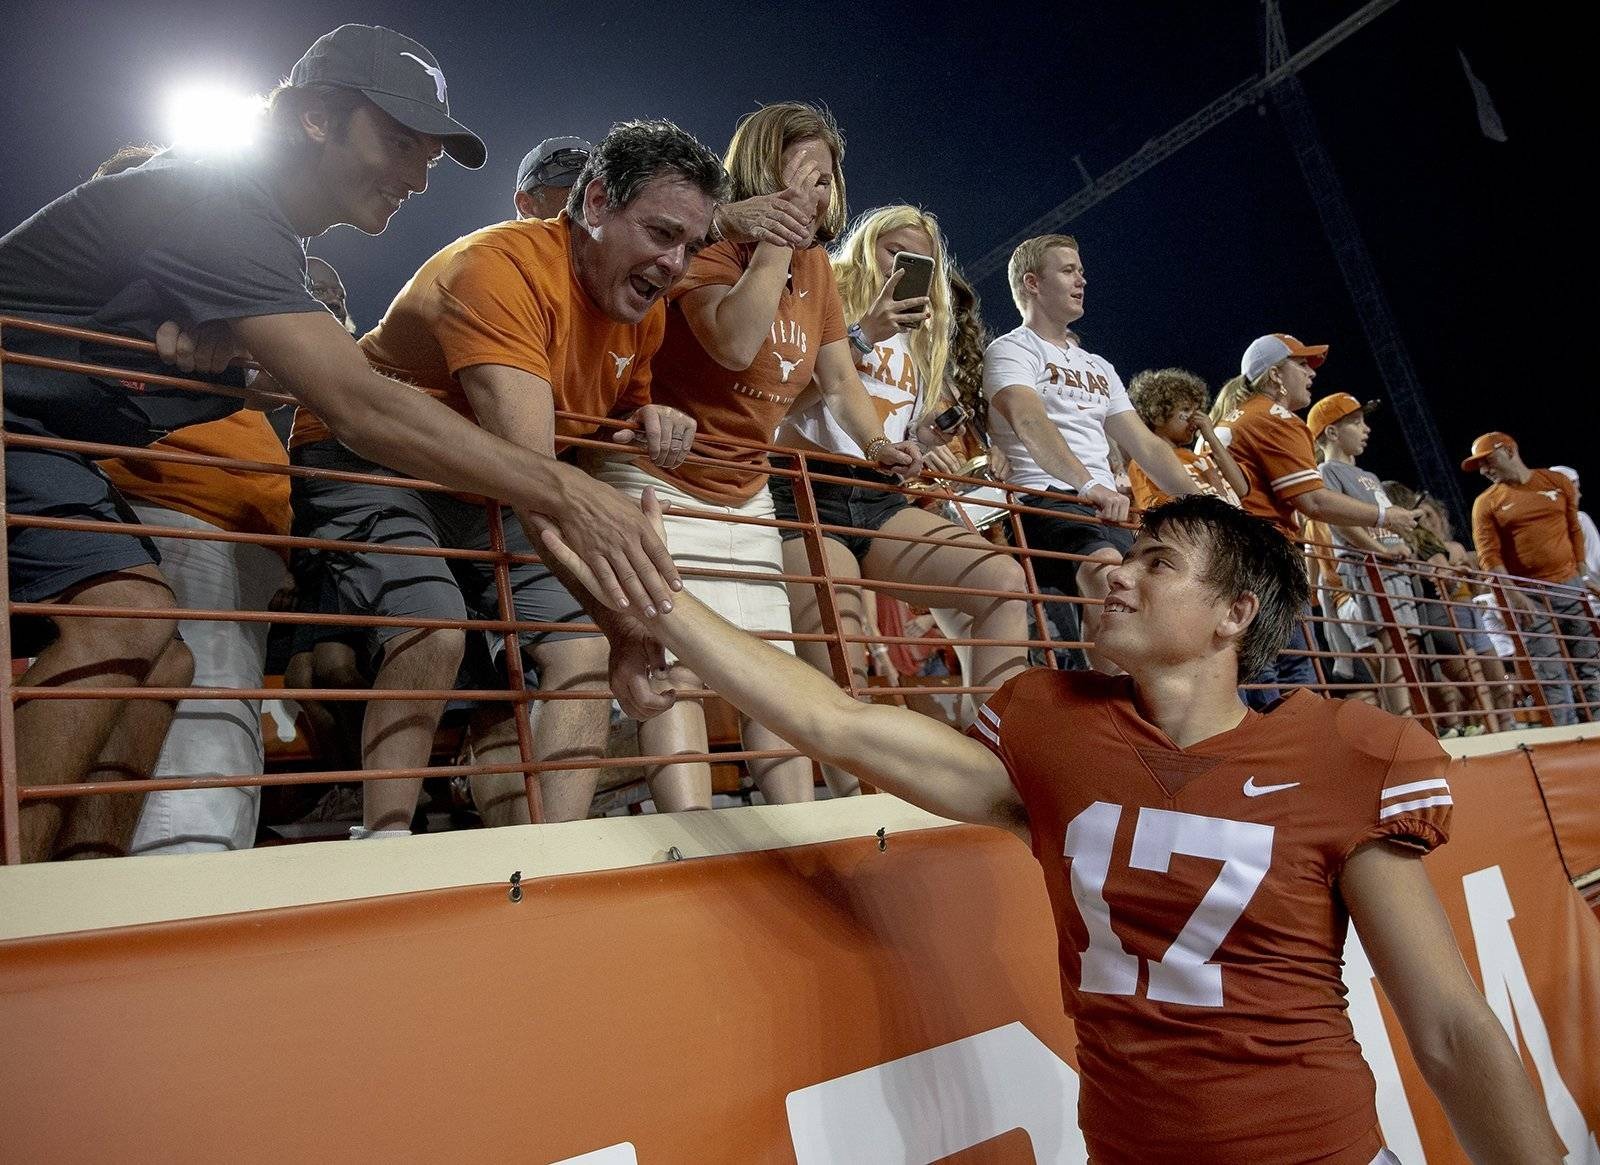 Dicker the Kicker beats Kansas with the fifth buzzer-beating field goal for Texas since 2000